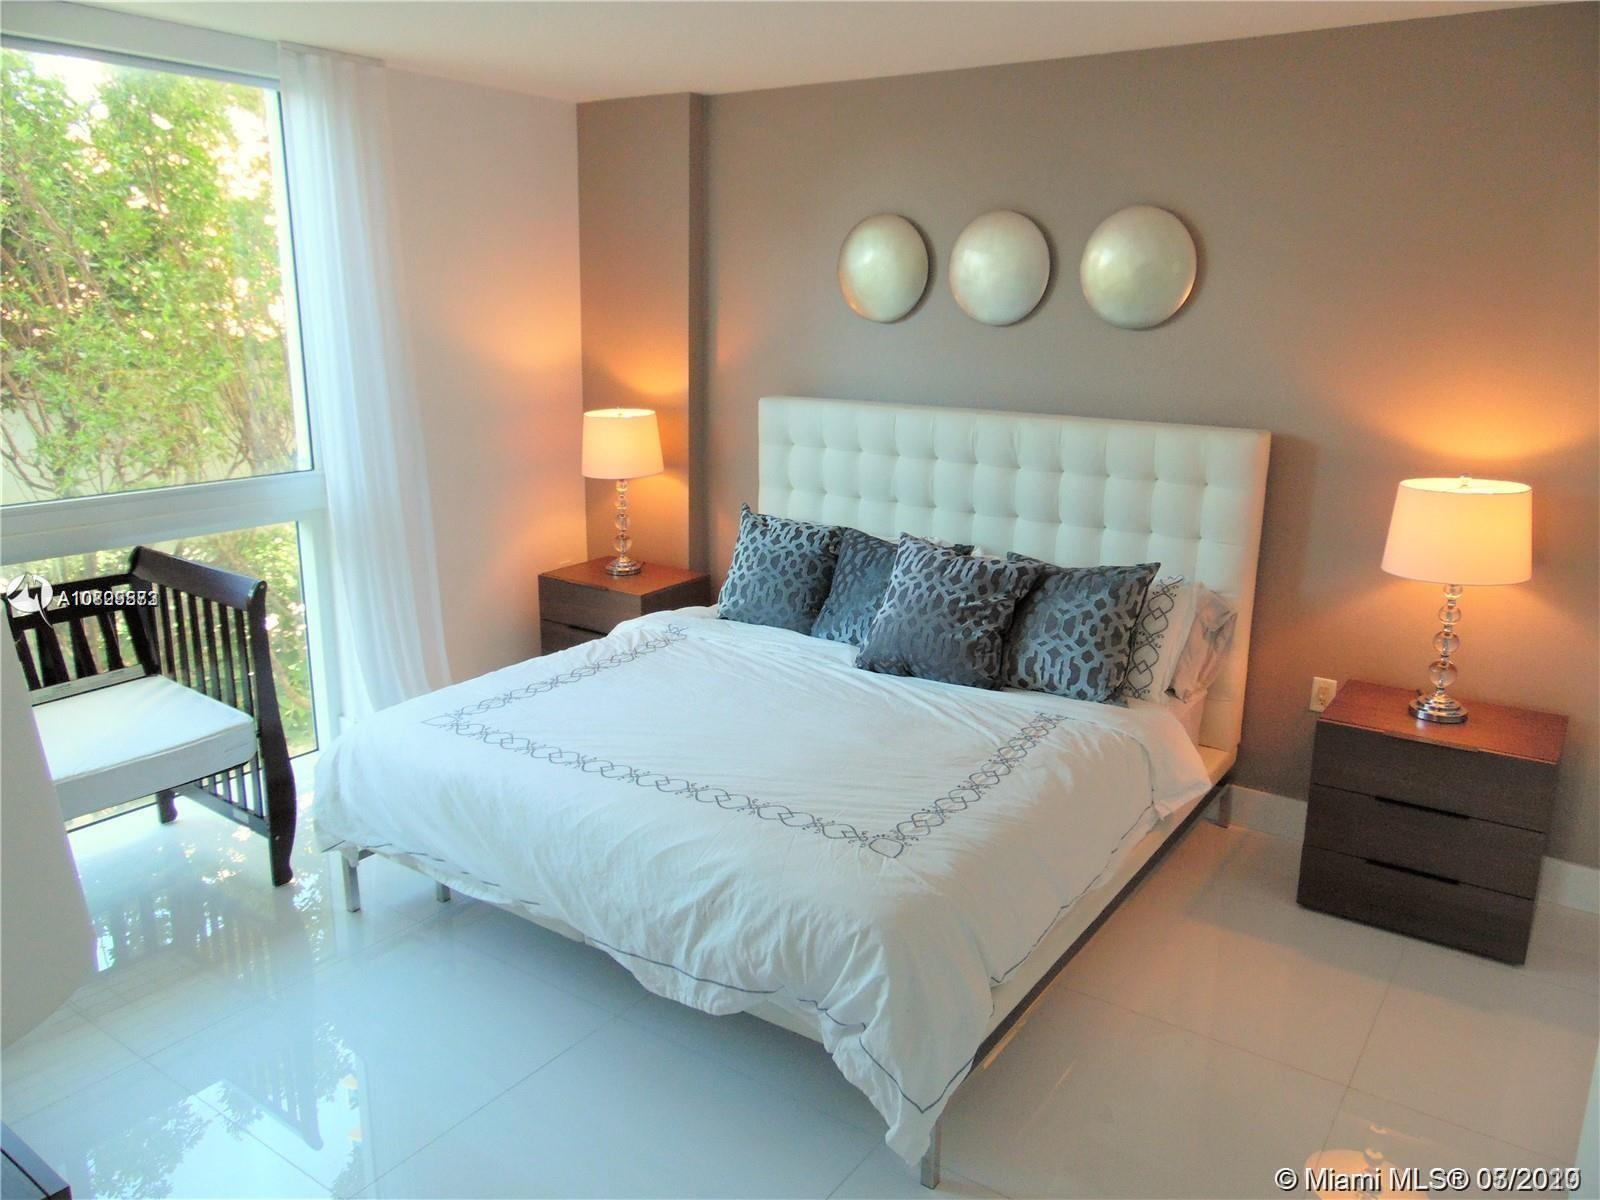 Gorgeous 3 Bed located in tower 2 of St. Tropez. Building offers resort-style amenities including a